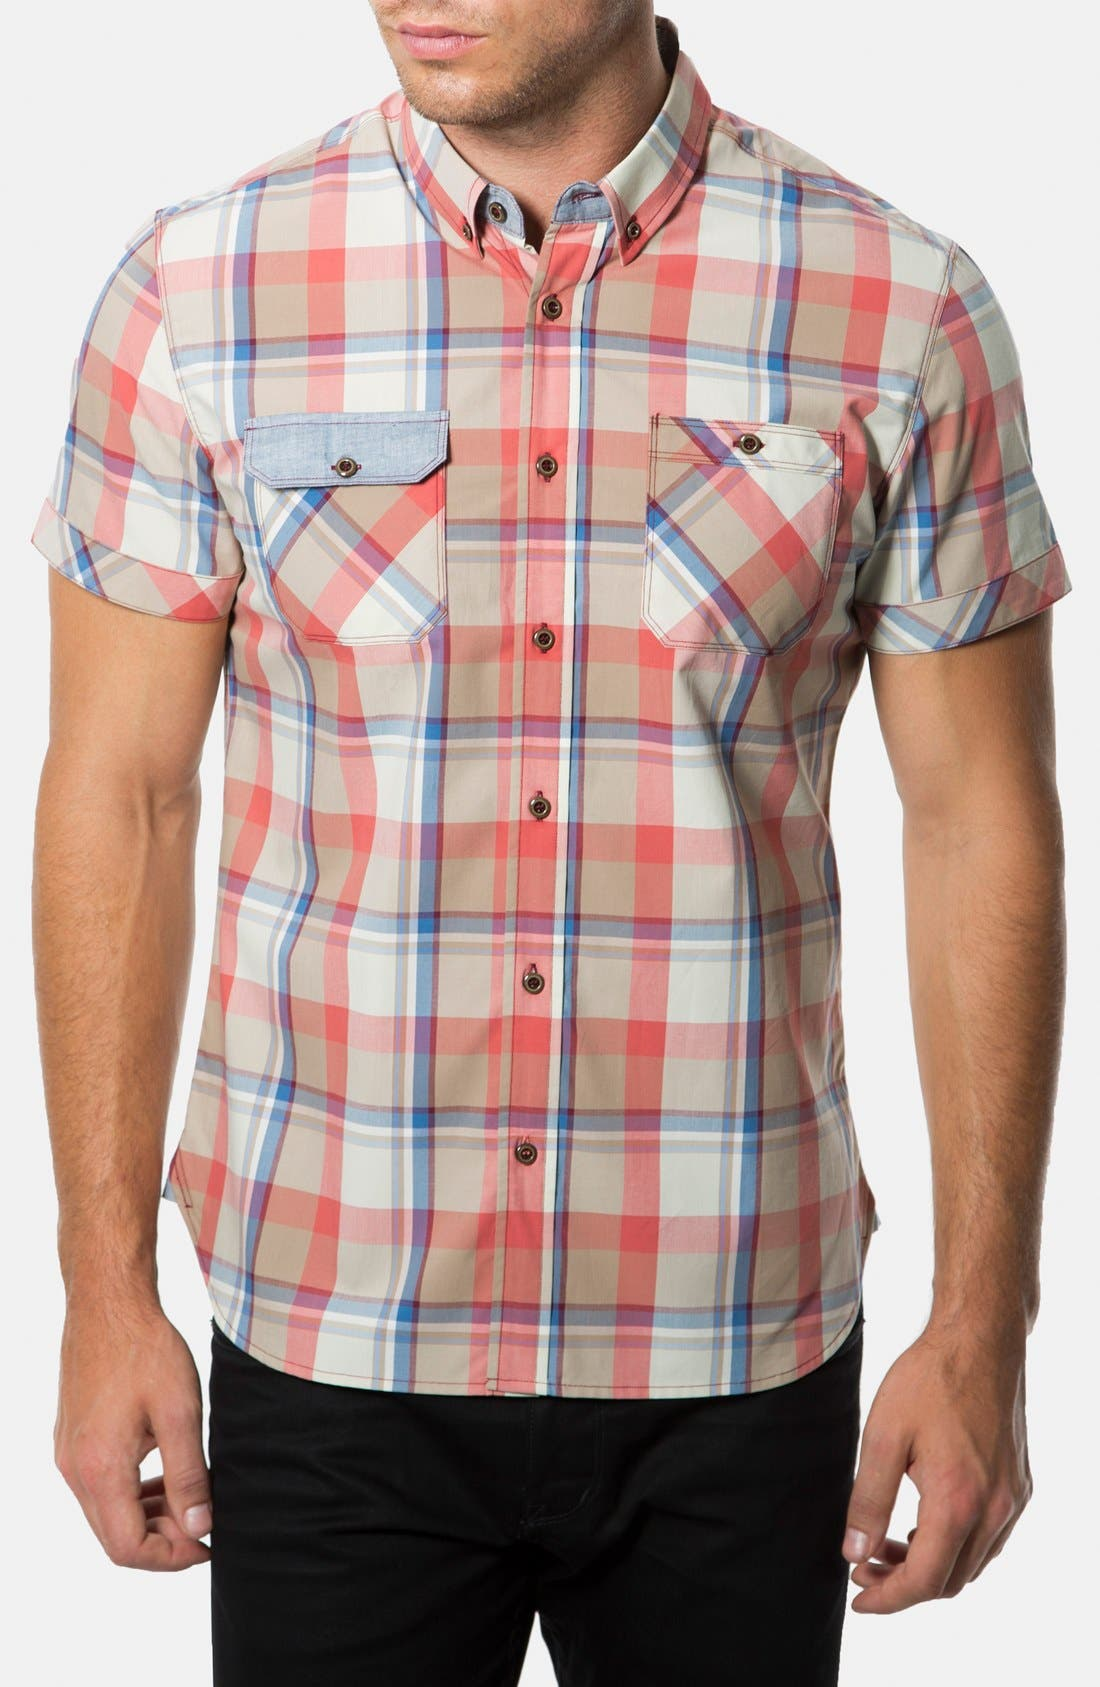 Alternate Image 1 Selected - 7 Diamonds 'Age of Reason' Short Sleeve Plaid Sport Shirt